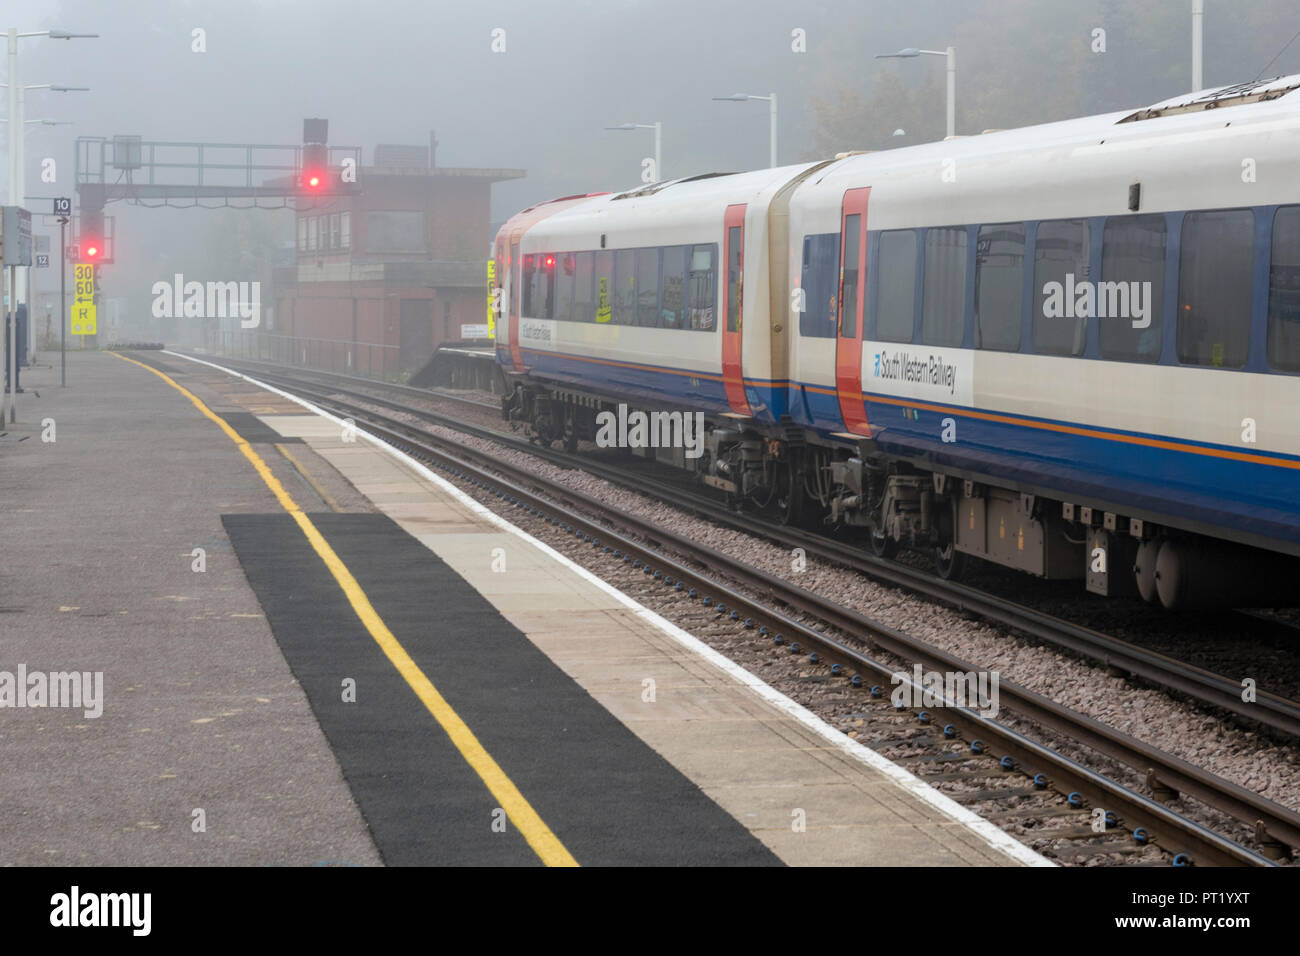 London, UK. 5th October 2018. Southwestern railway trains on a foggy moring at Southamton railway station on the first day of further industrial action by Guards in reaction to no deal with the train operating company on the future role of Guards on trains. Traincrew striking and managers running trains providing a greatly reduced service for the travelling public and rail season ticket holders commuting into London Waterloo. Credit: Steve Hawkins Photography/Alamy Live News - Stock Image